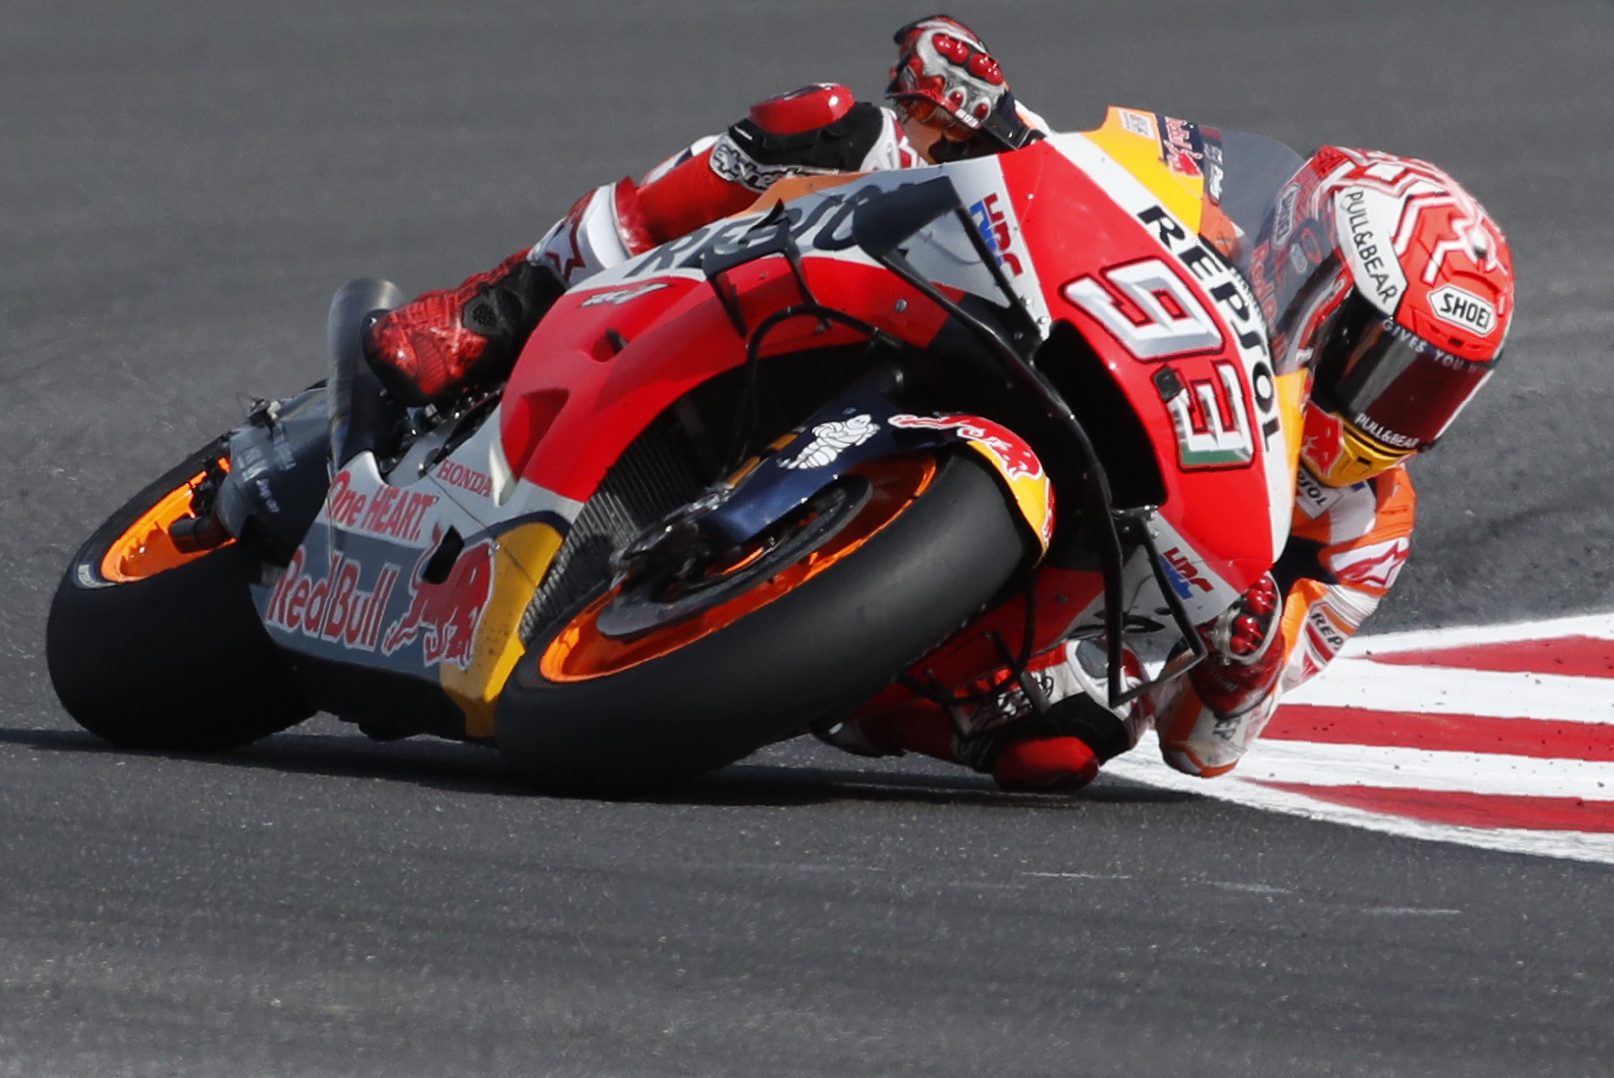 Motogp Grand Prix Of Aragon 2019 Race Schedule Live Stream And Top Riders Bleacher Report Latest News Videos And Highlights